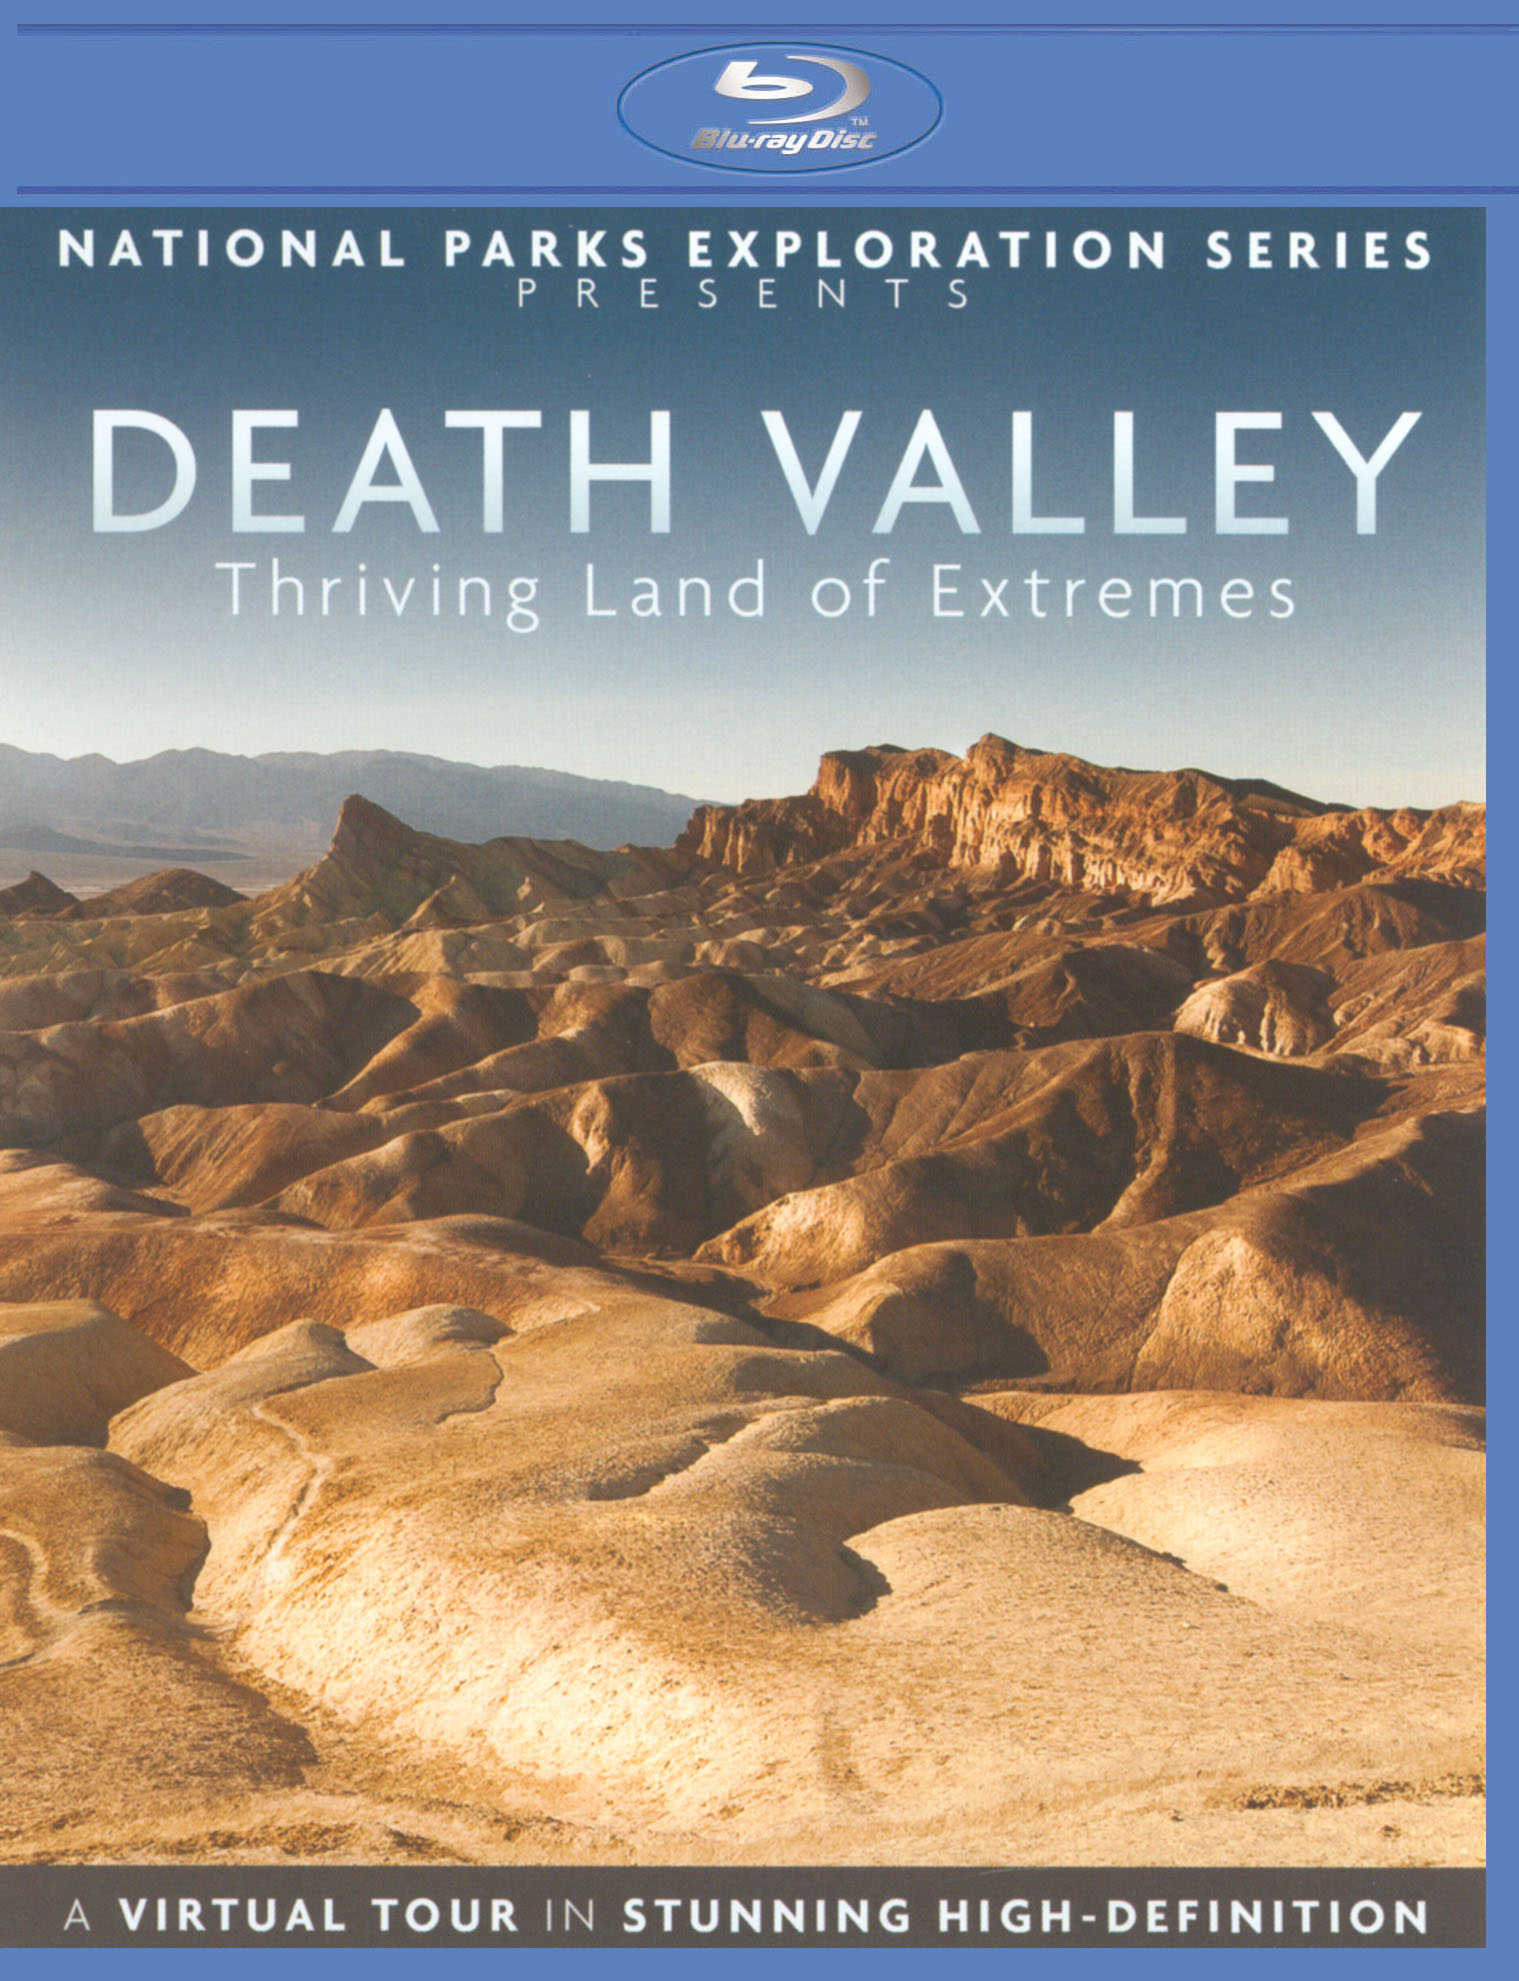 National Parks Exploration Series: Death Valley - Thriving Land of Extremes